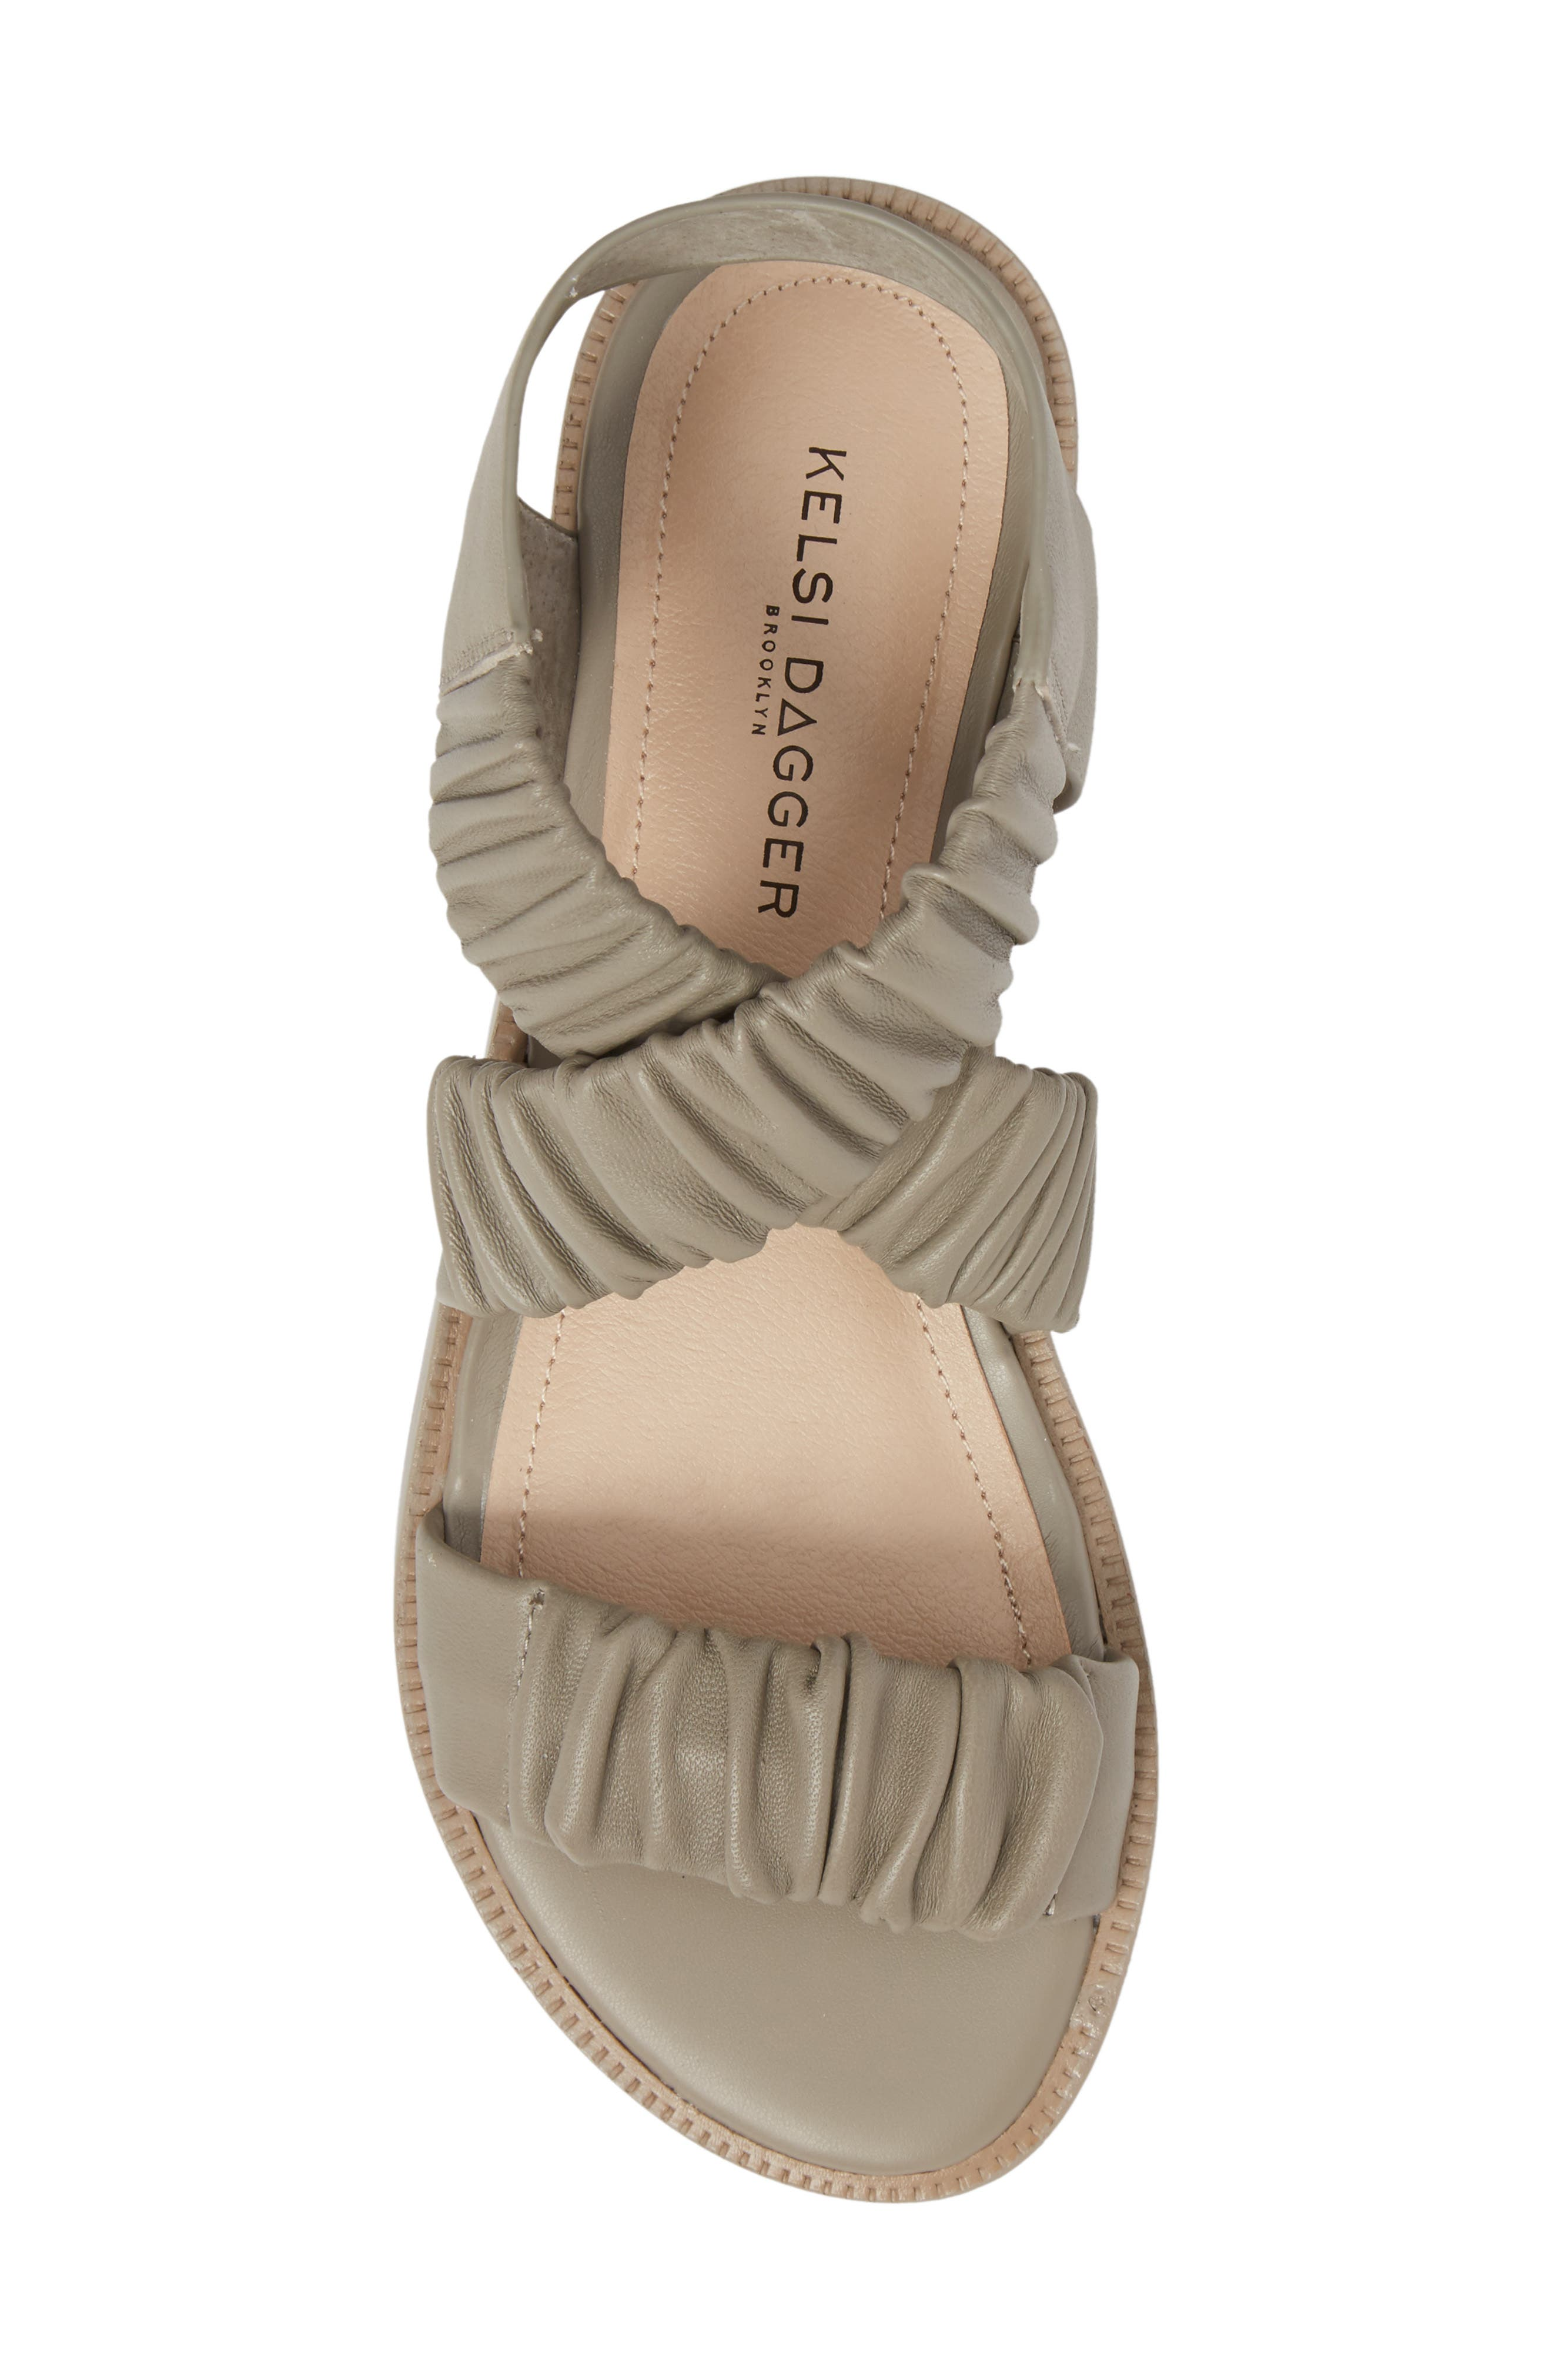 Ryder Pleated Flat Sandal,                             Alternate thumbnail 5, color,                             Clove Leather